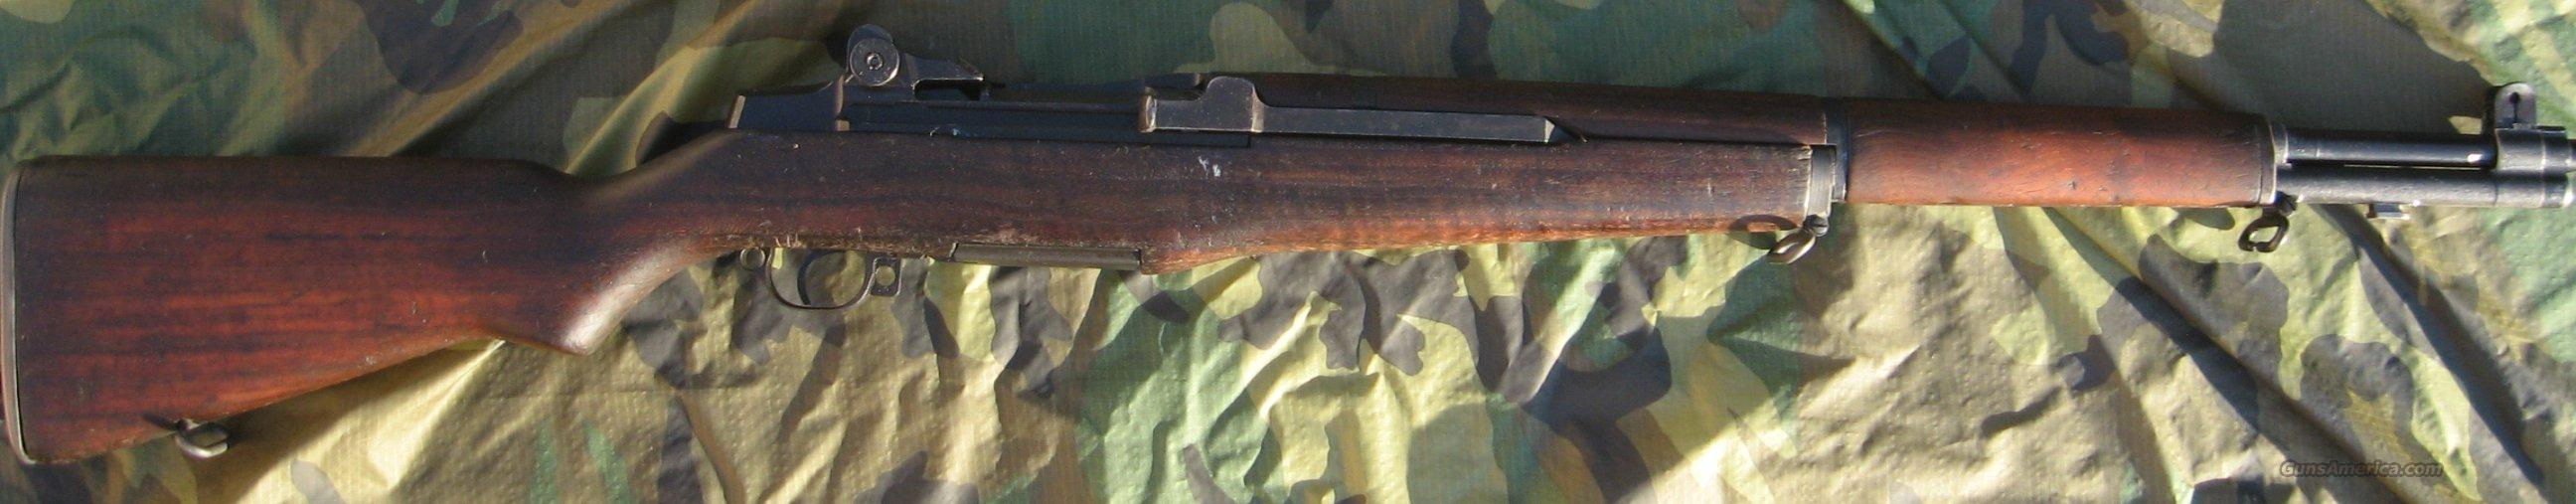 US GI M1 Rifle  Guns > Rifles > Military Misc. Rifles US > M1 Garand